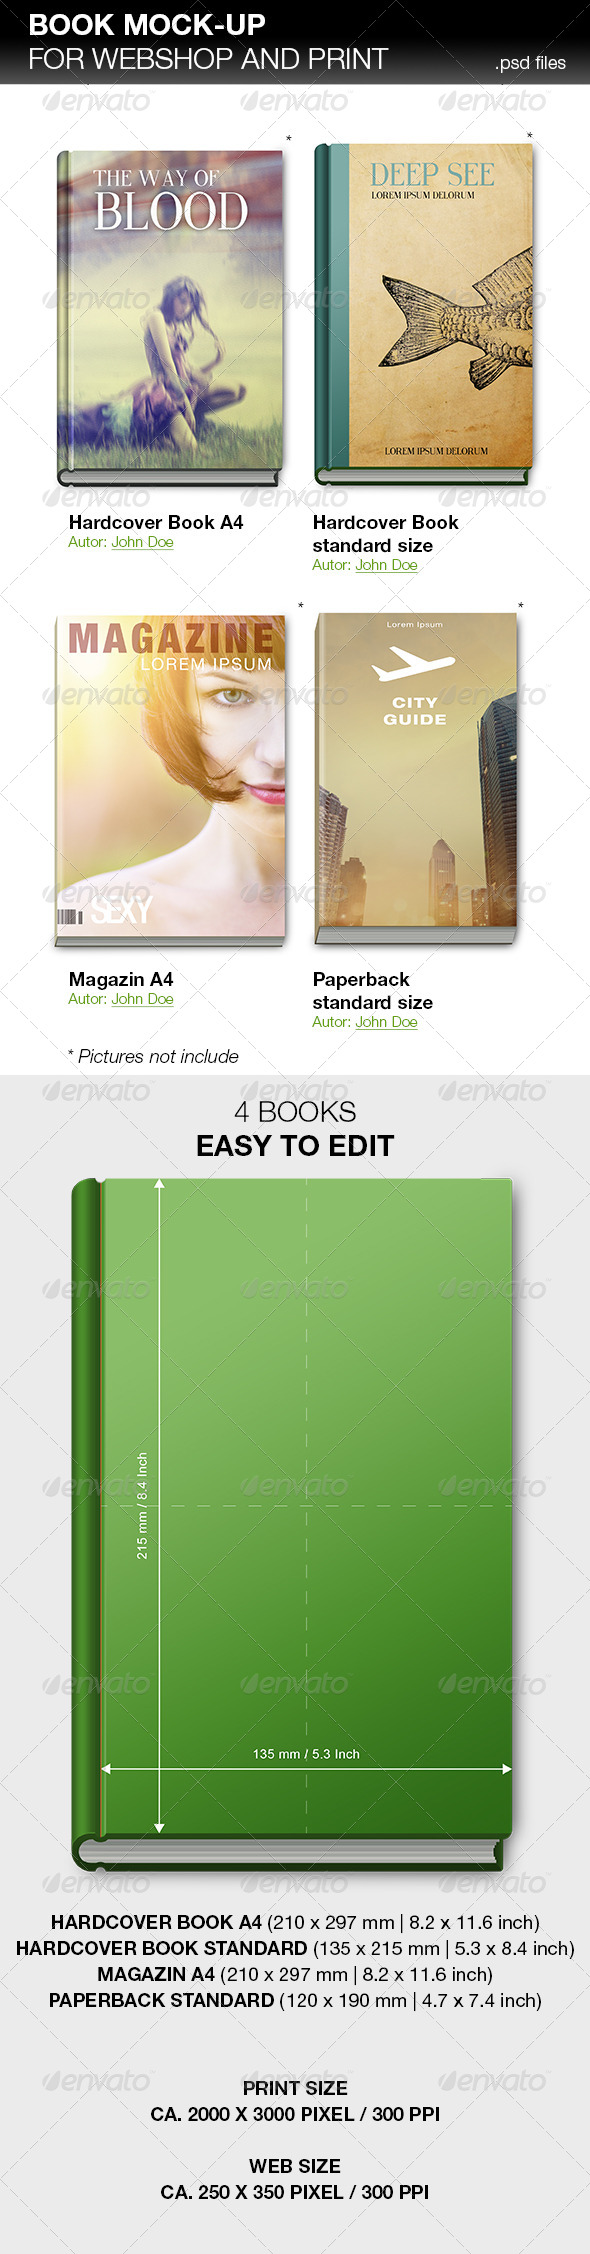 GraphicRiver Book Mockup for Webshop and Print 5814541